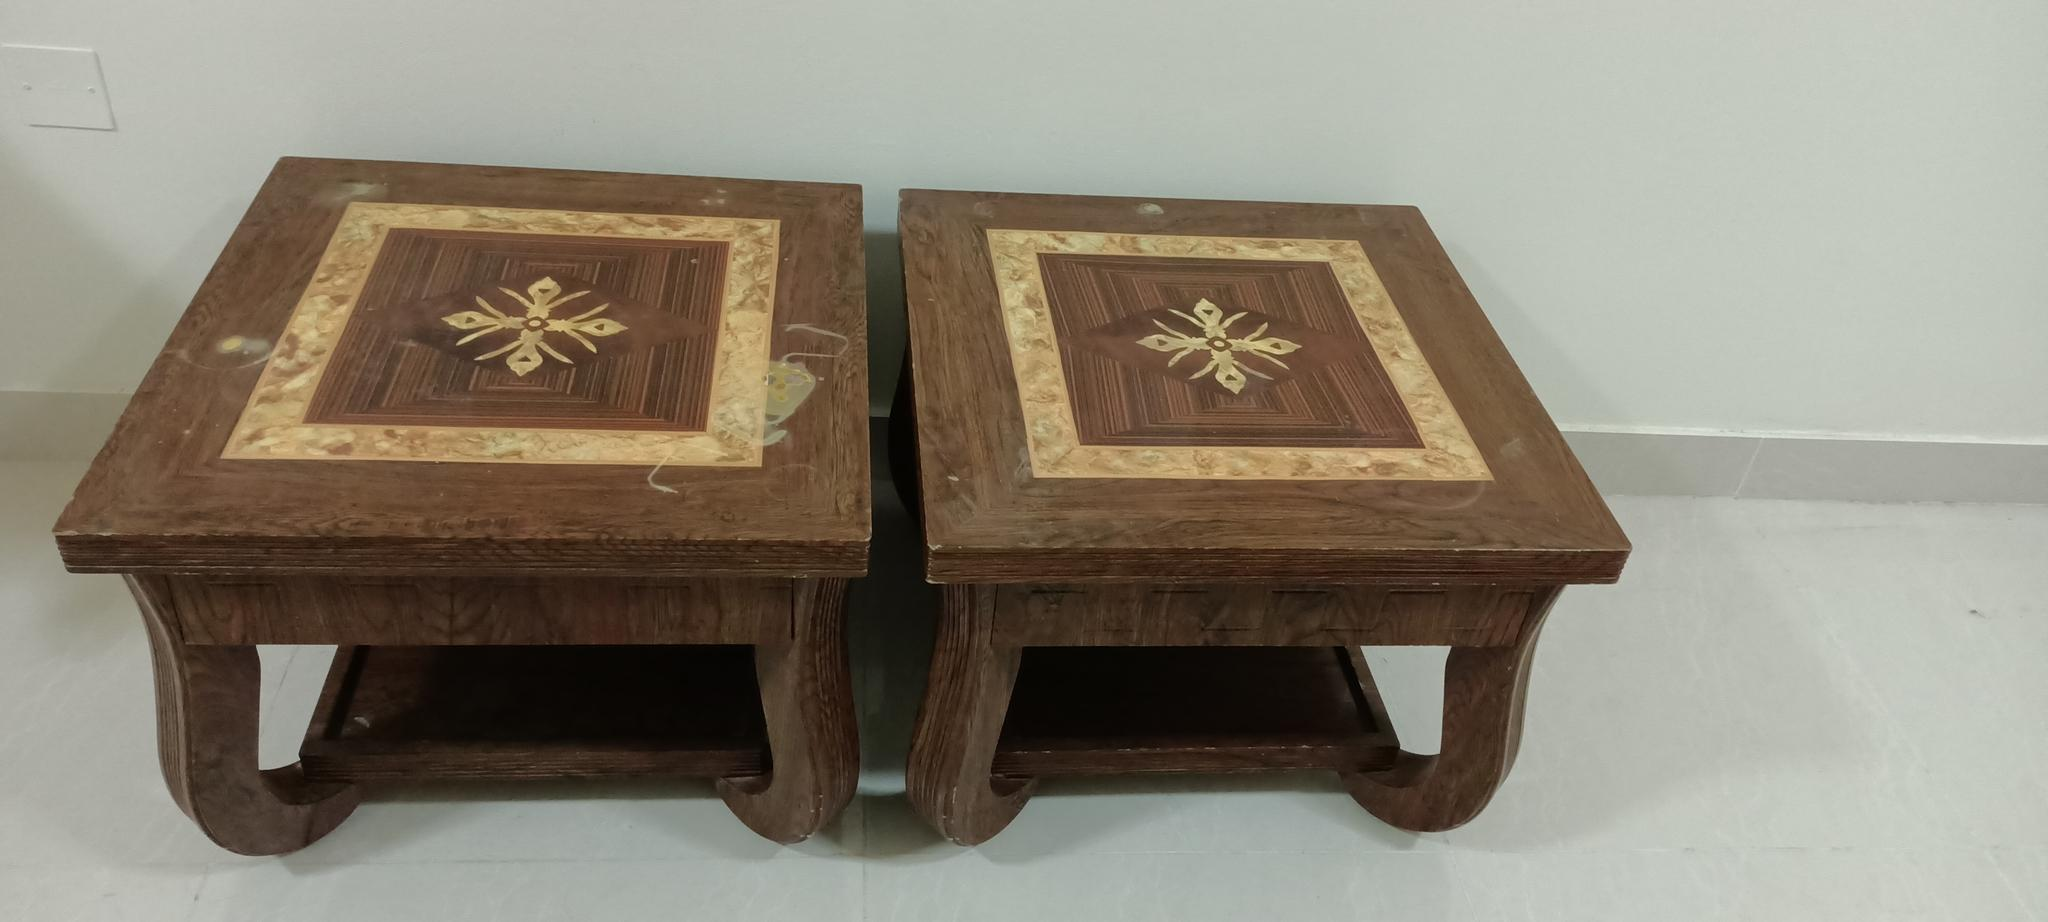 Center table plus side tables-set of 3 very strong